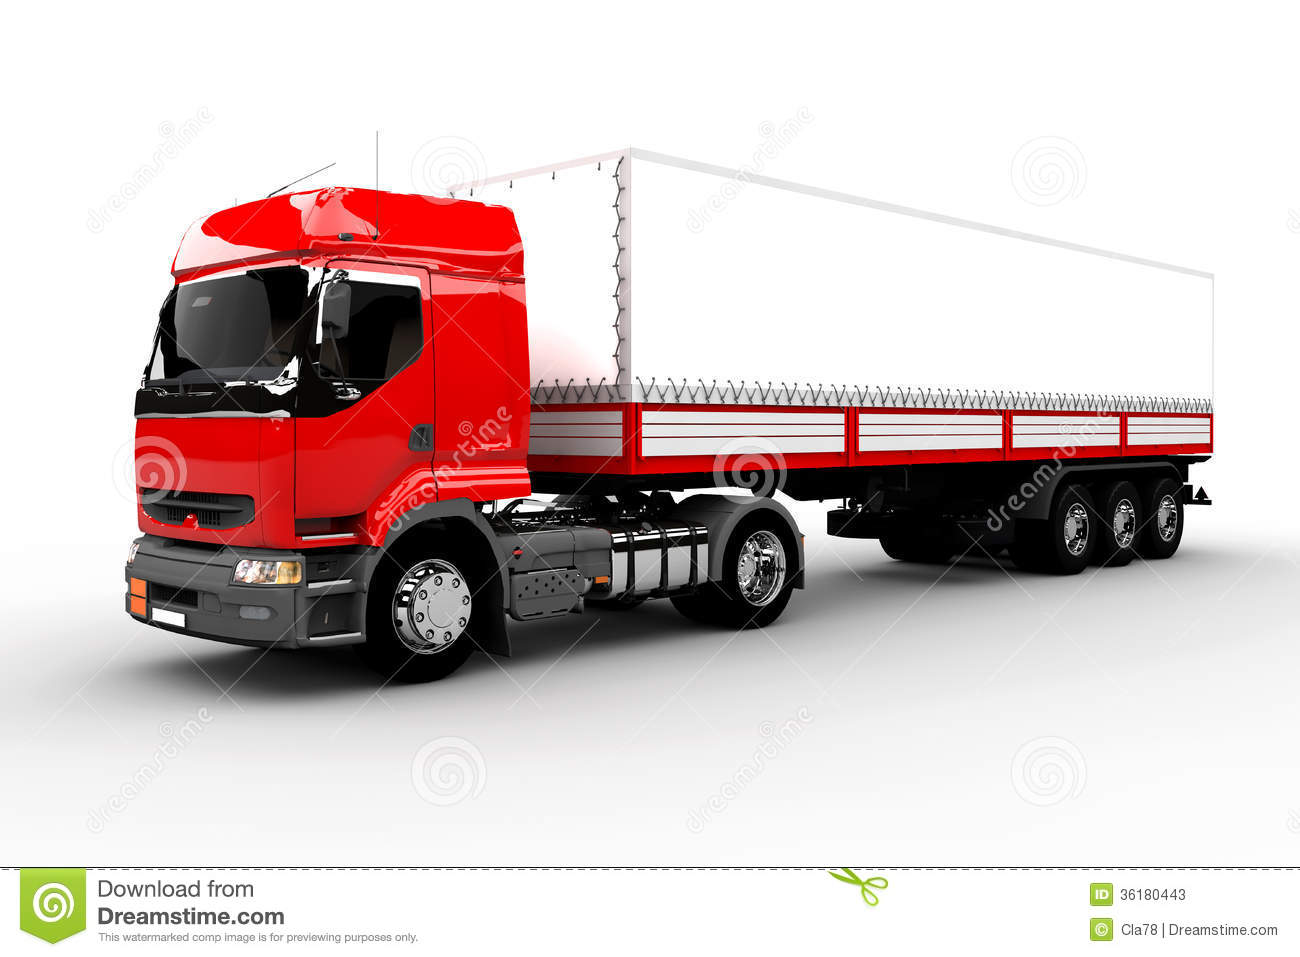 Red And White Transport Truck Stock Photos - Image: 36180443